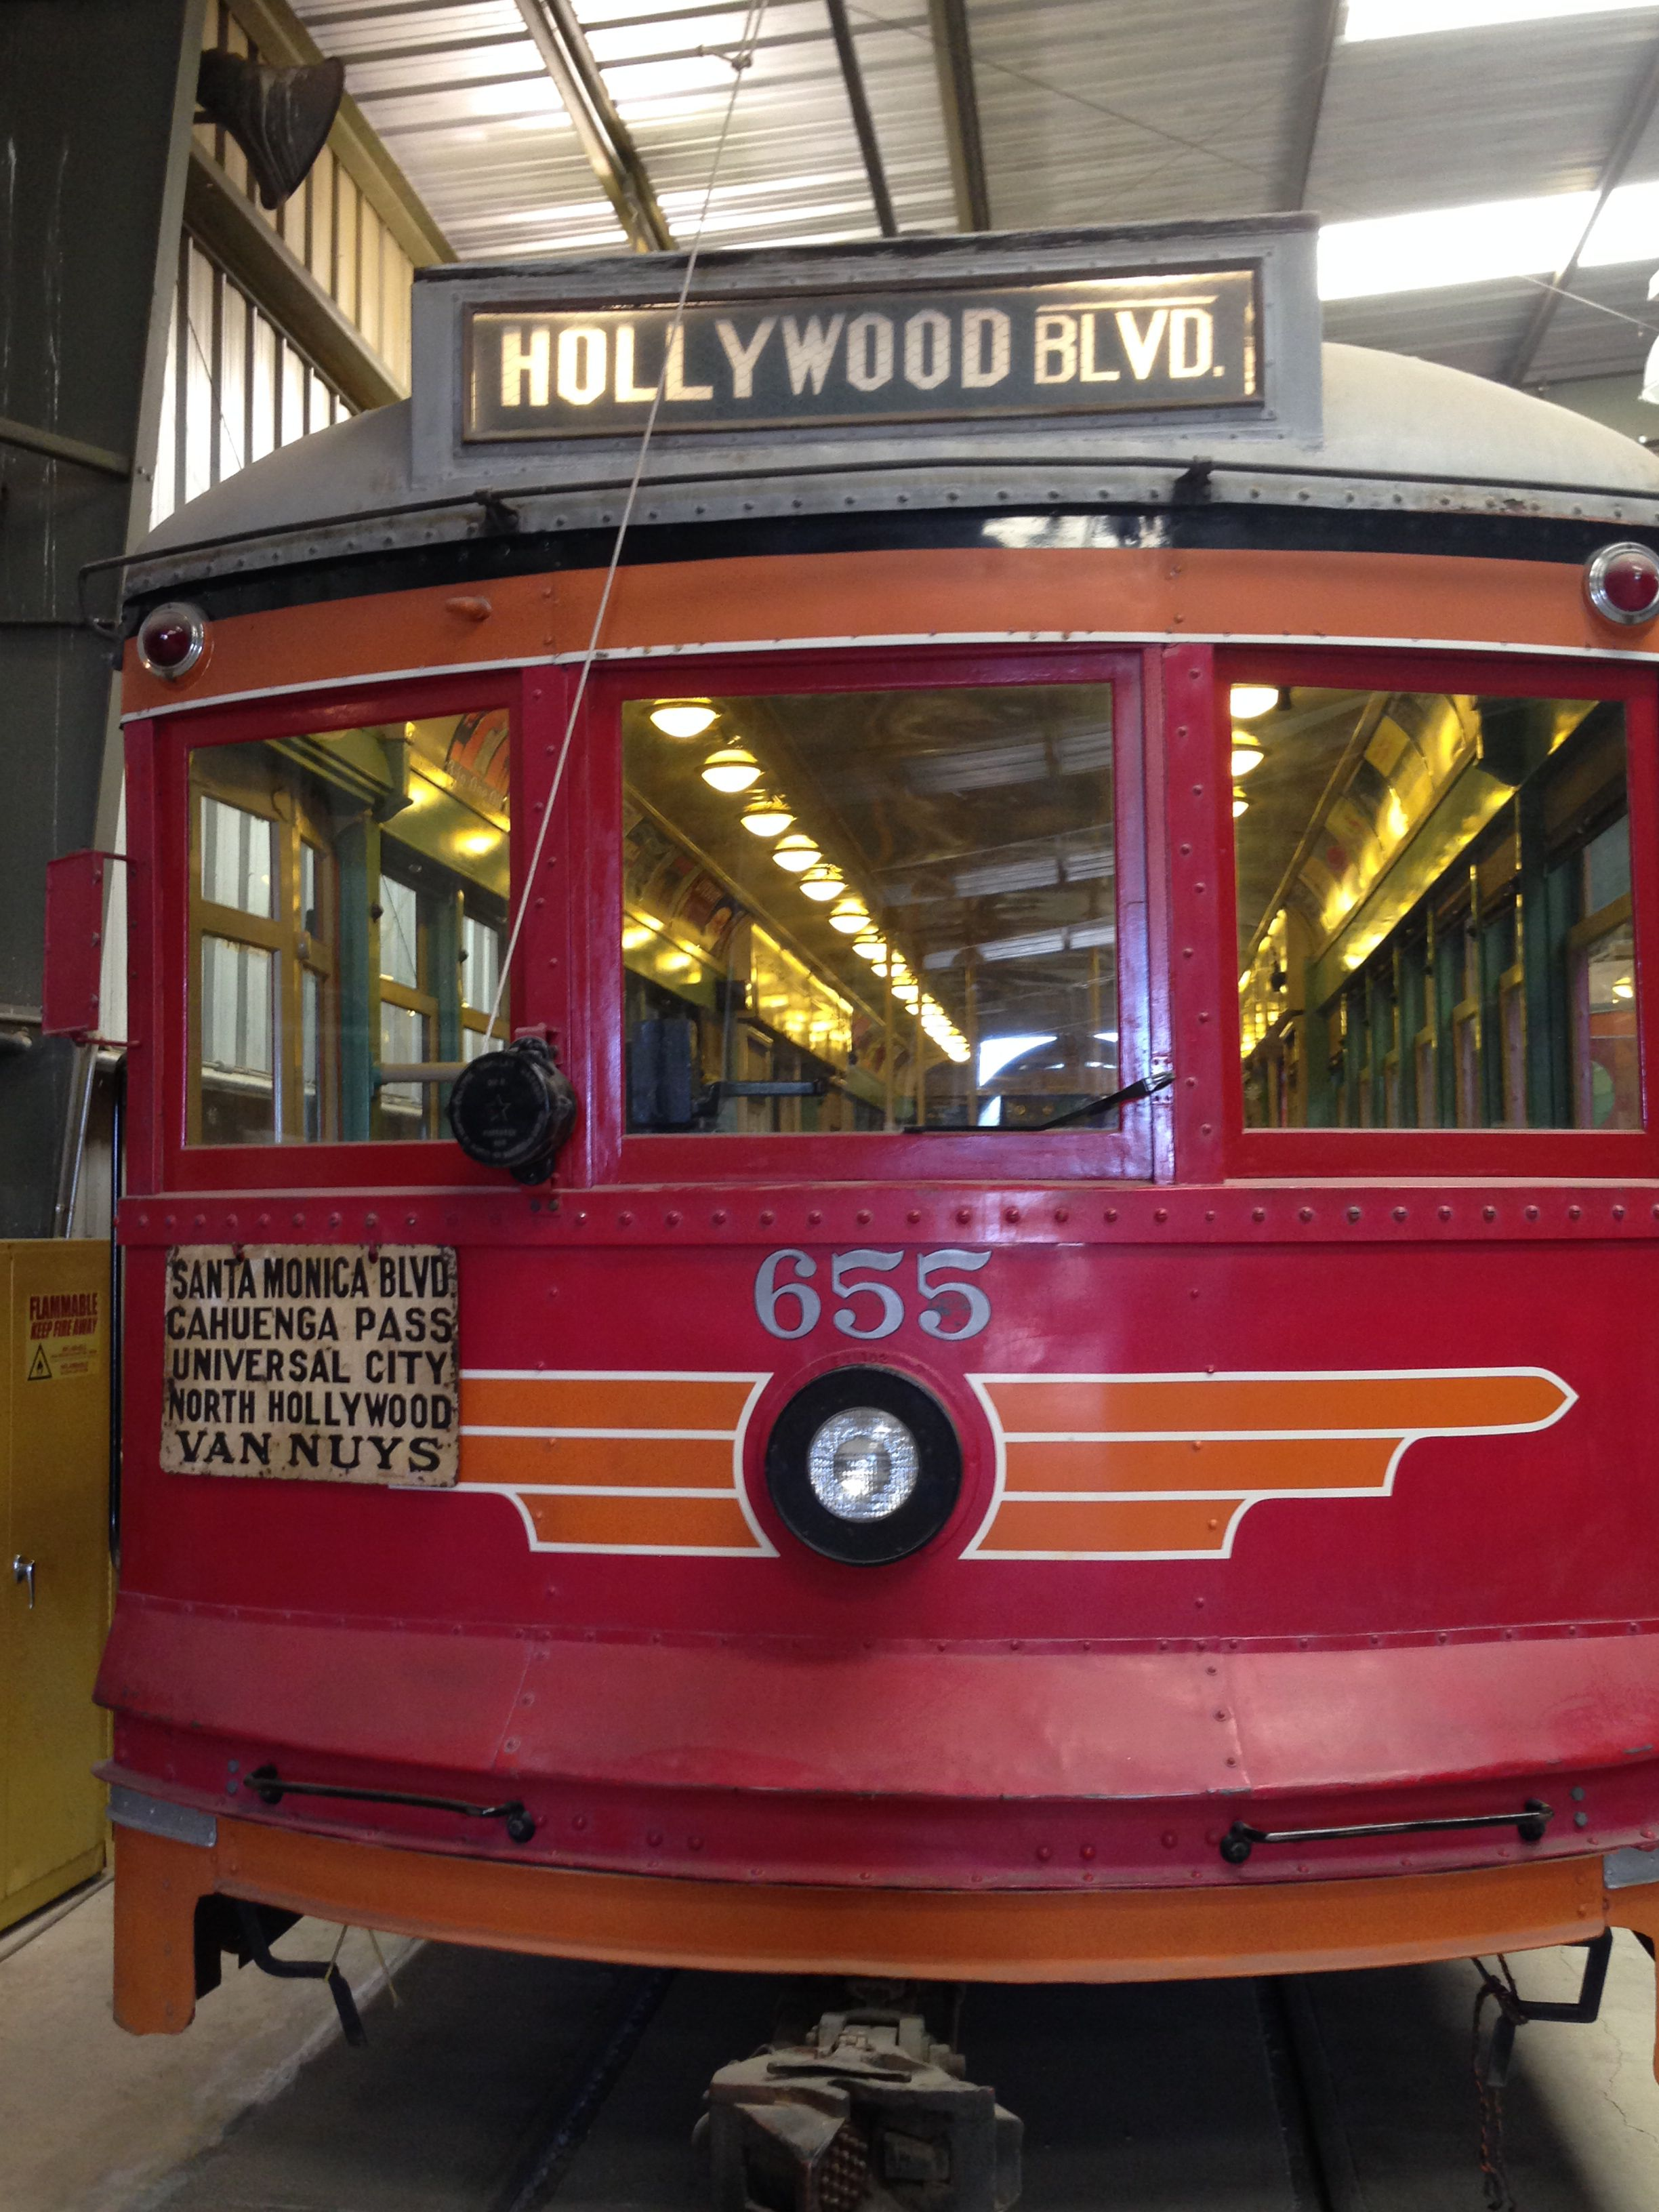 4291621592a75e08b6cc96ea2fea9065 - How To Get From Lax To Hollywood By Public Transportation